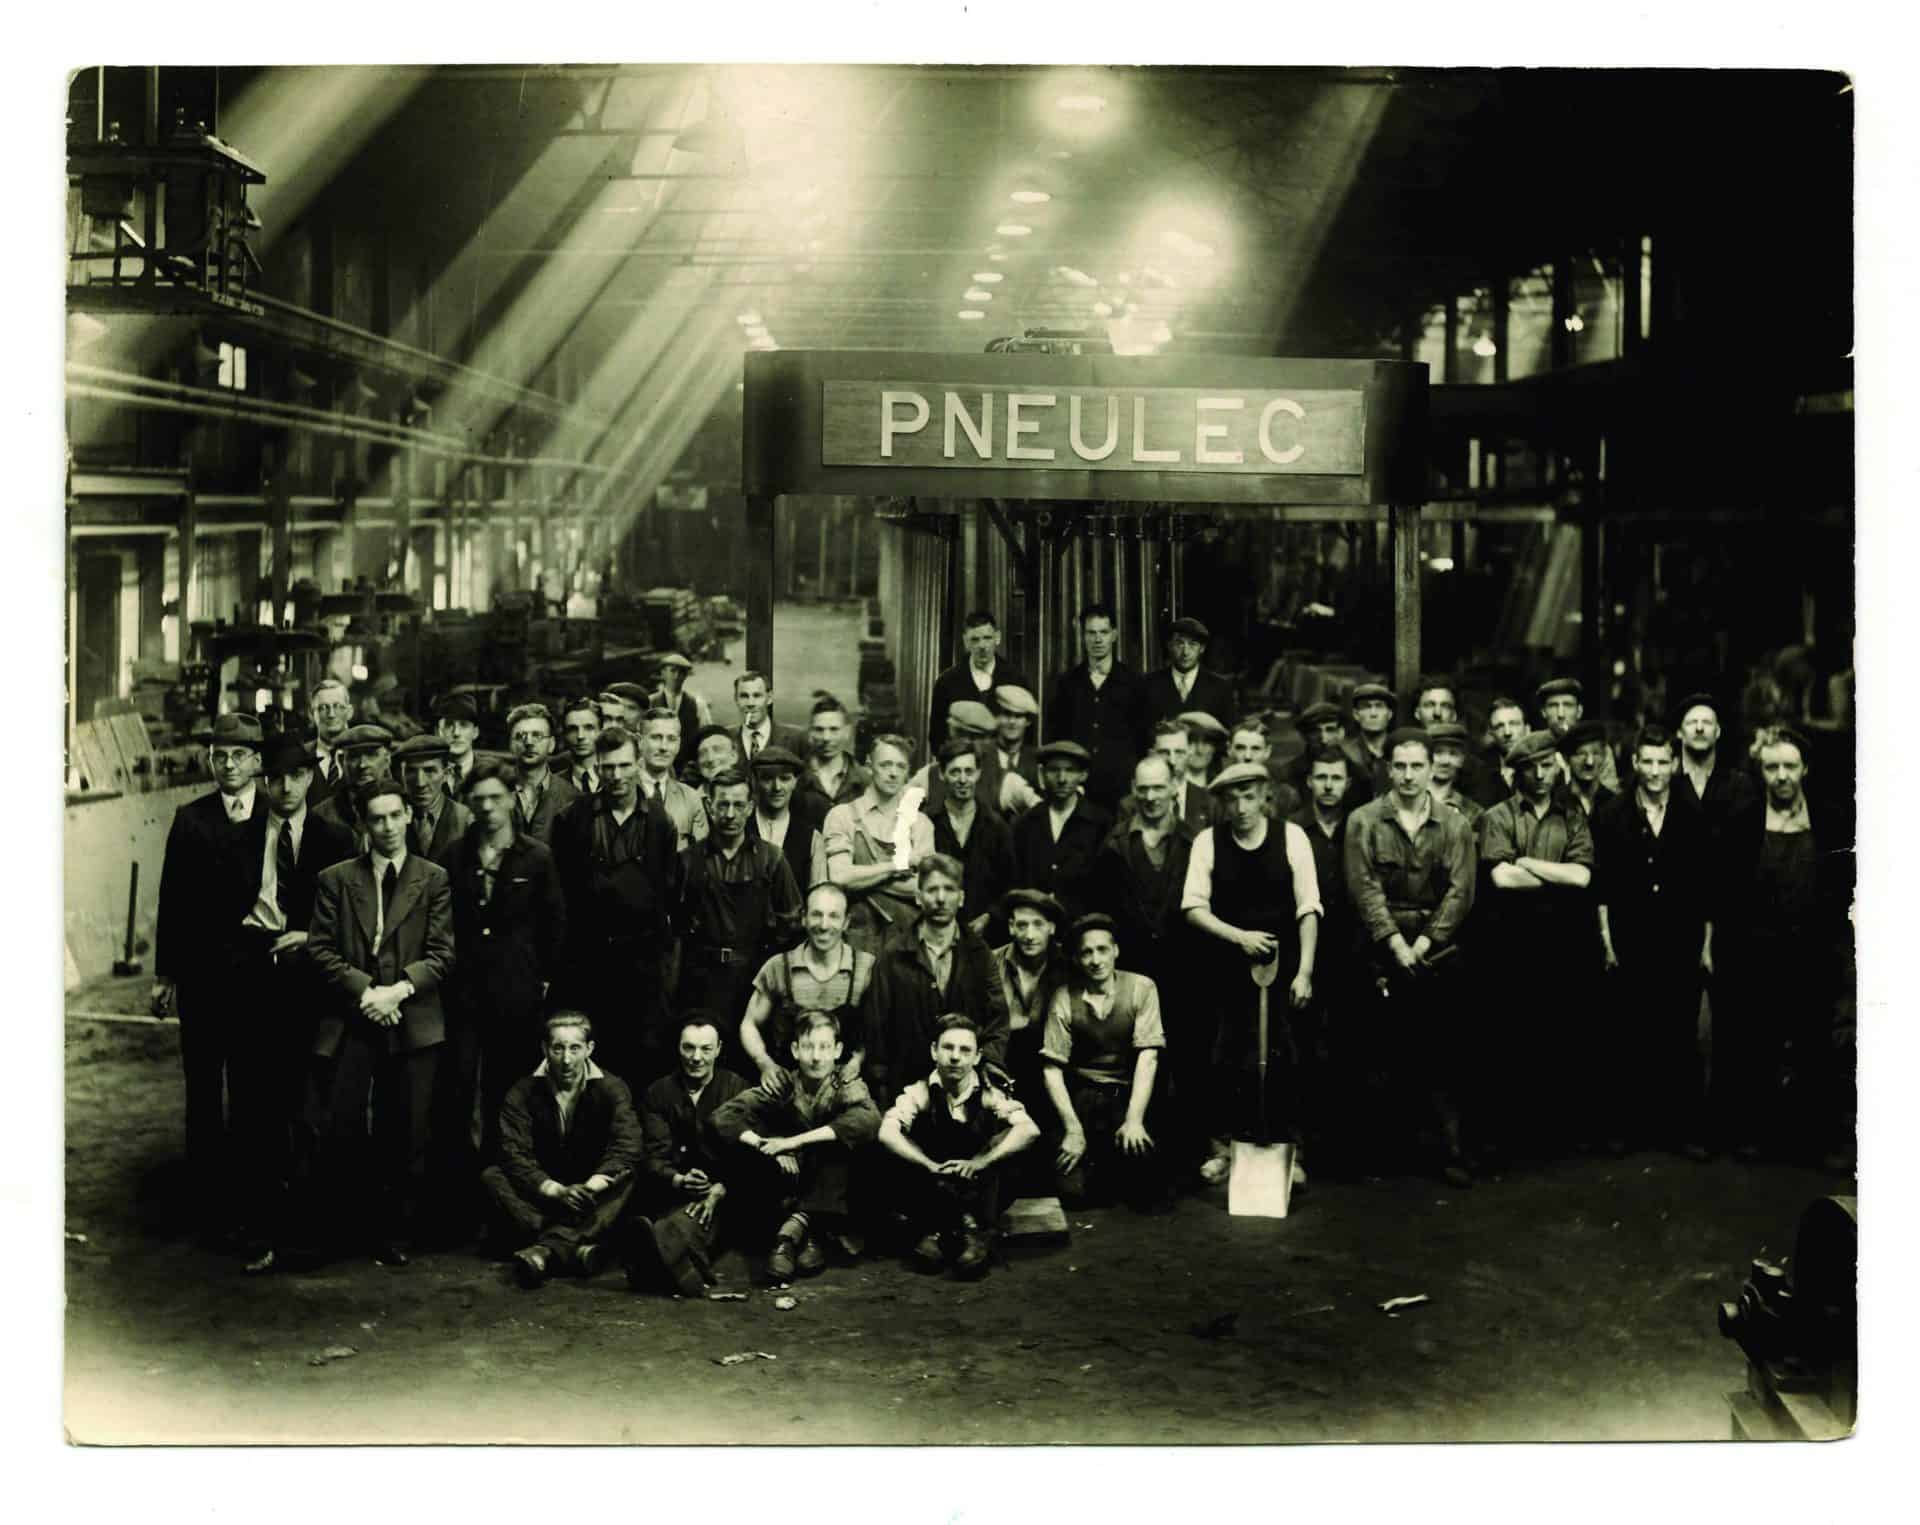 Factory floor of Pneulec, Mafeking Road, Smethwick. Arthur Wilding is seated second from left. Photograph by G. F. Greenfield